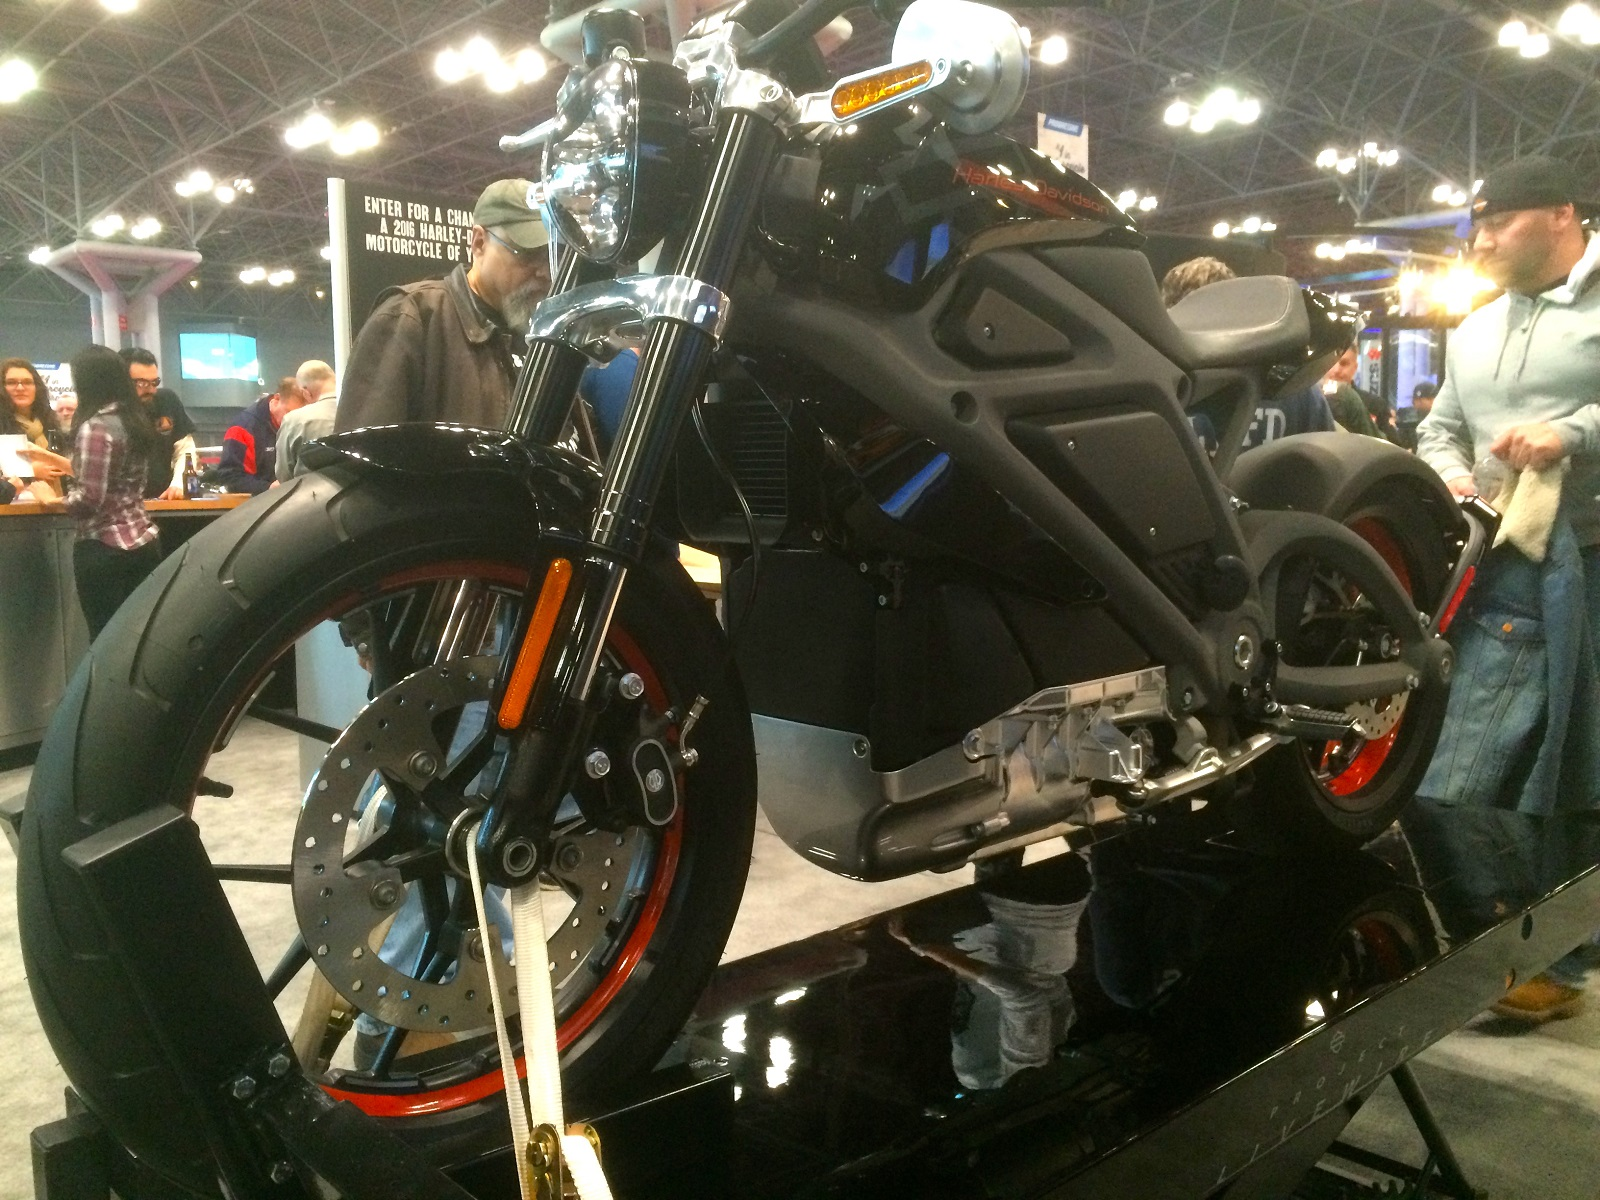 Harley Invests In Alta Motors Makes Progress On Electric Motorcycle